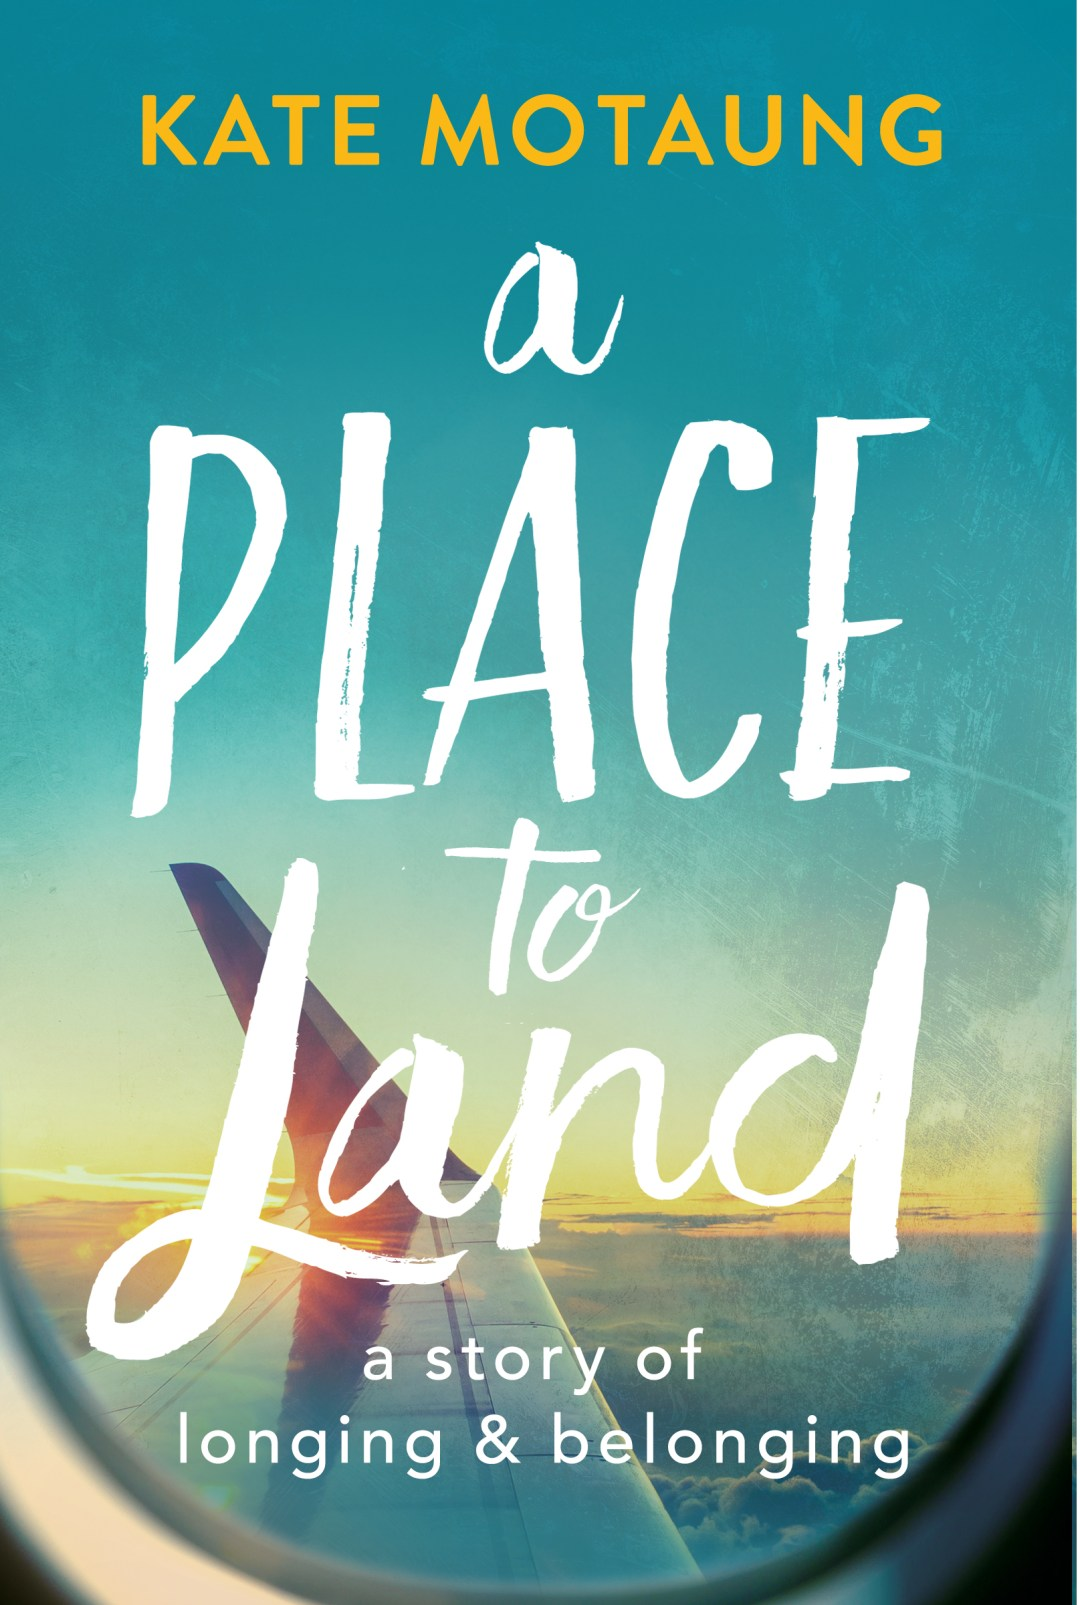 A Place to Land